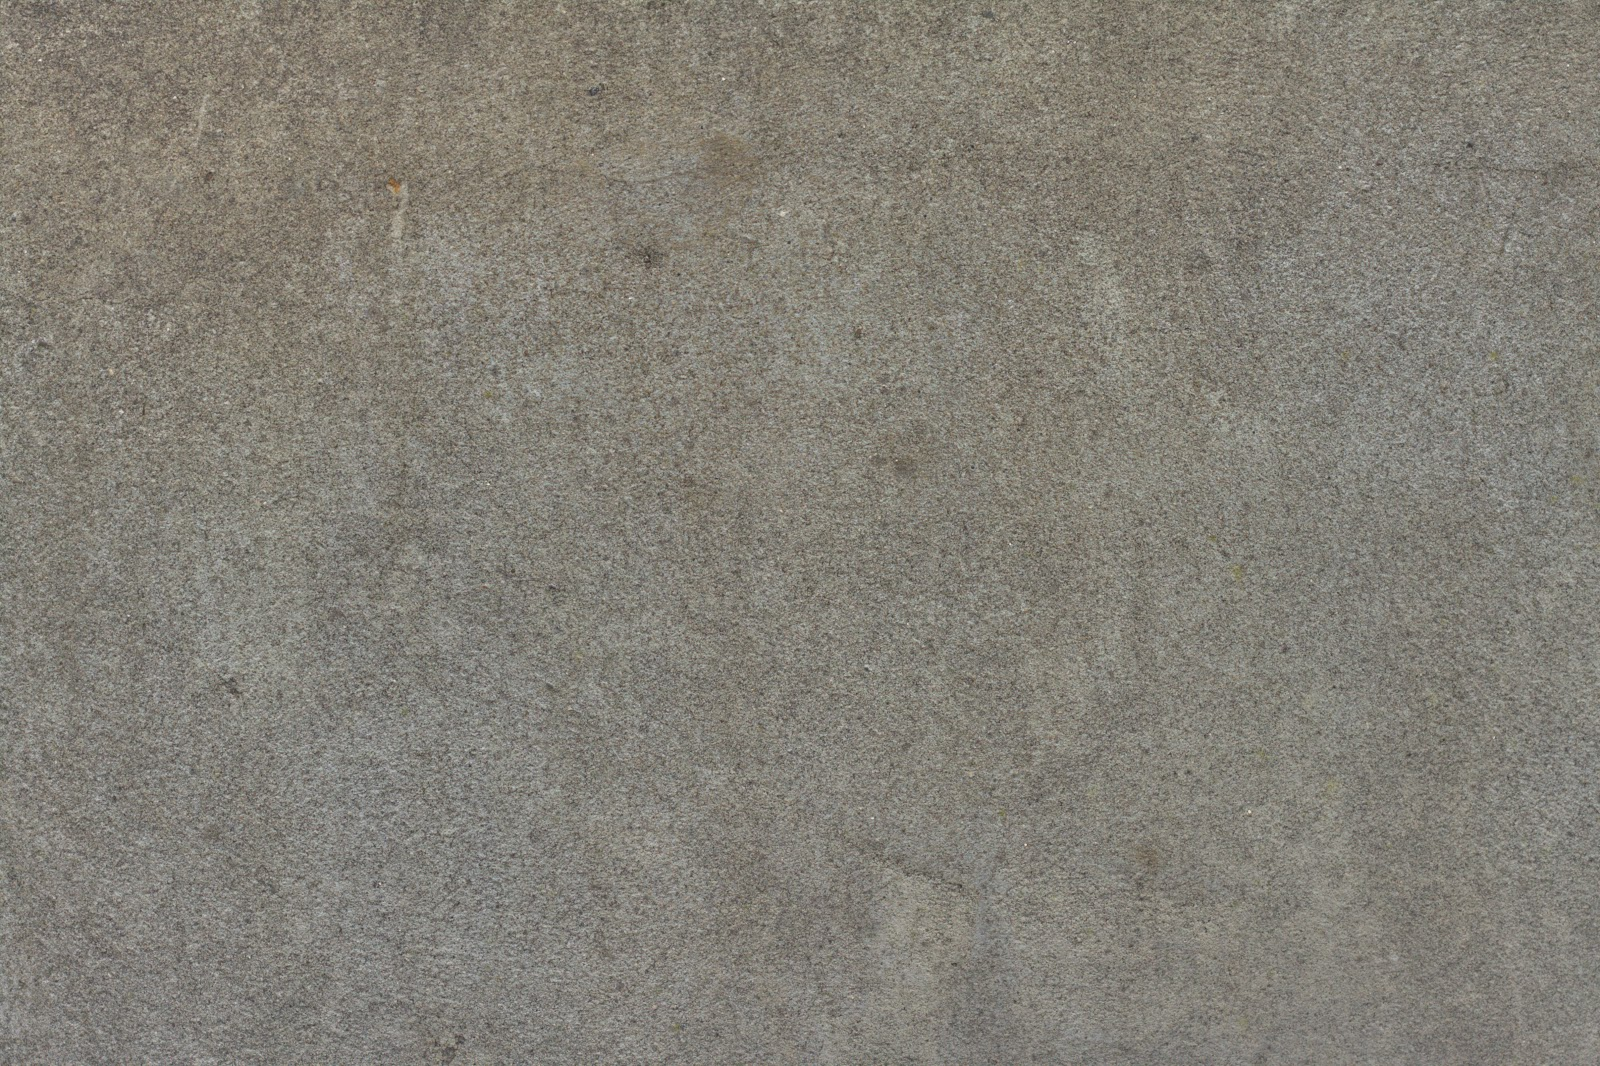 Dirty Concrete Floor Texture On concrete 23 Granite Rough Dirty Concrete Stone Texture 4770x3178 High Resolution Seamless Textures